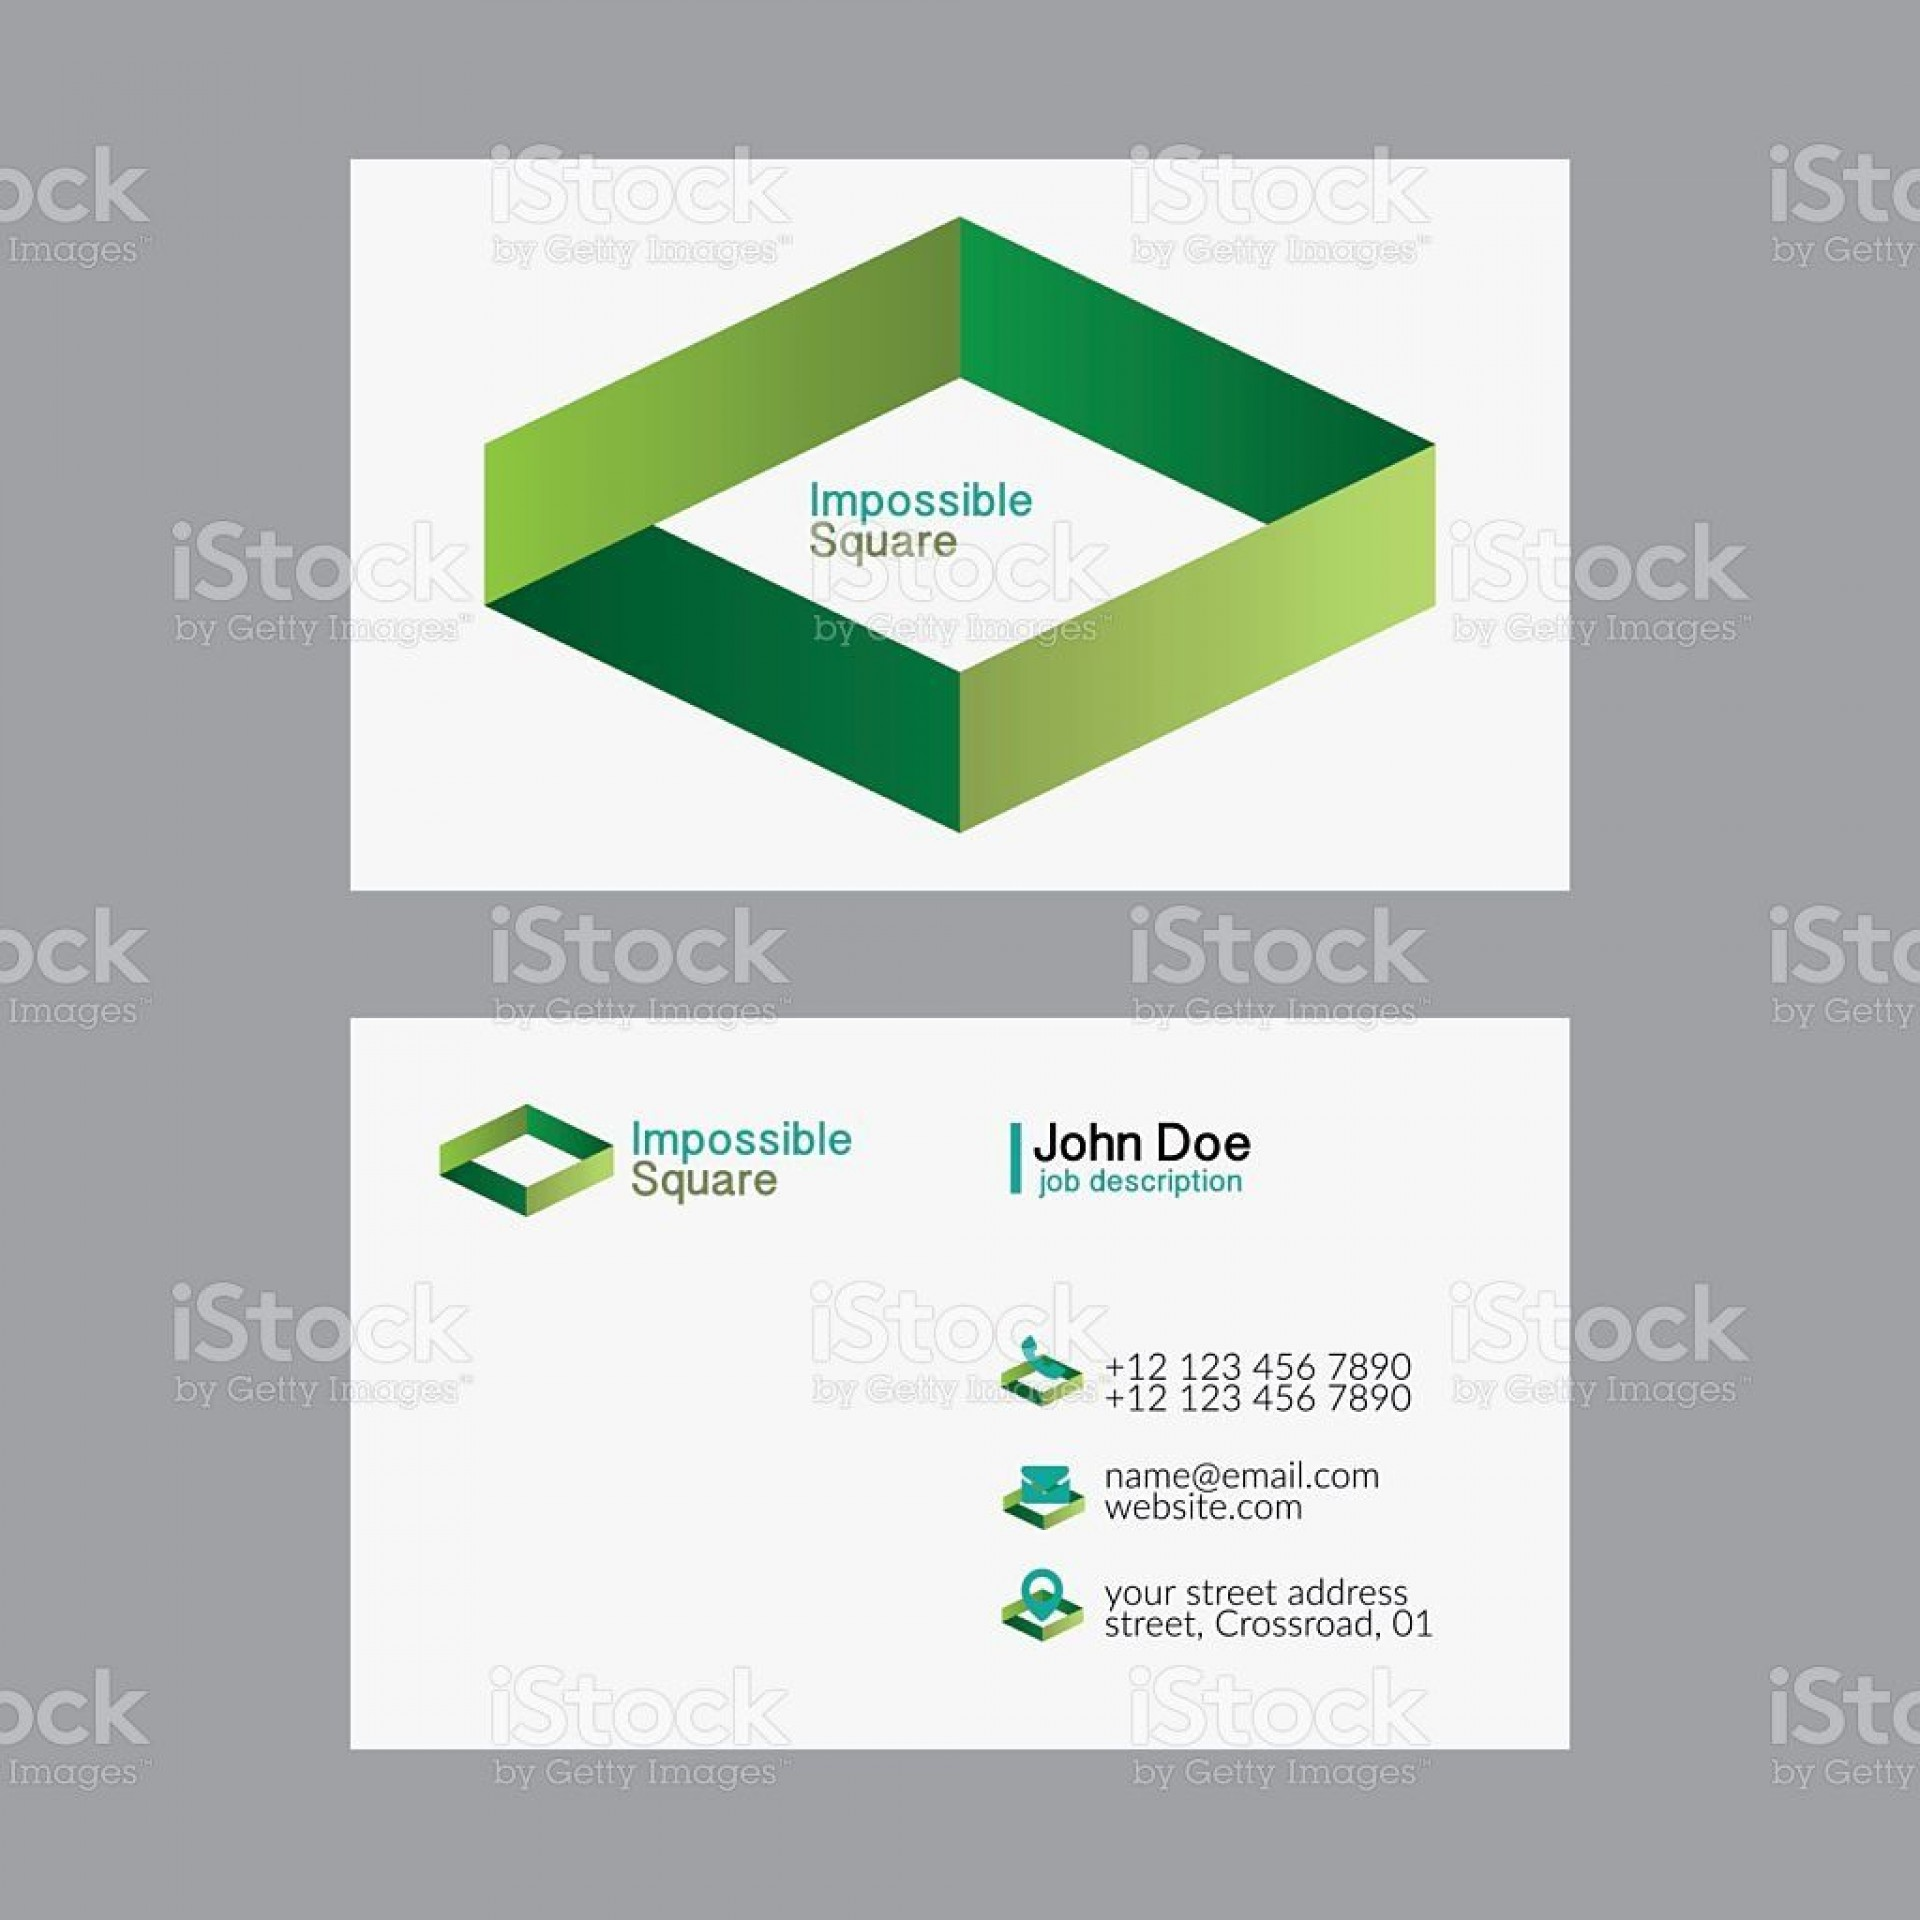 004 Frightening Square Busines Card Template Sample  Free Download Photoshop1920